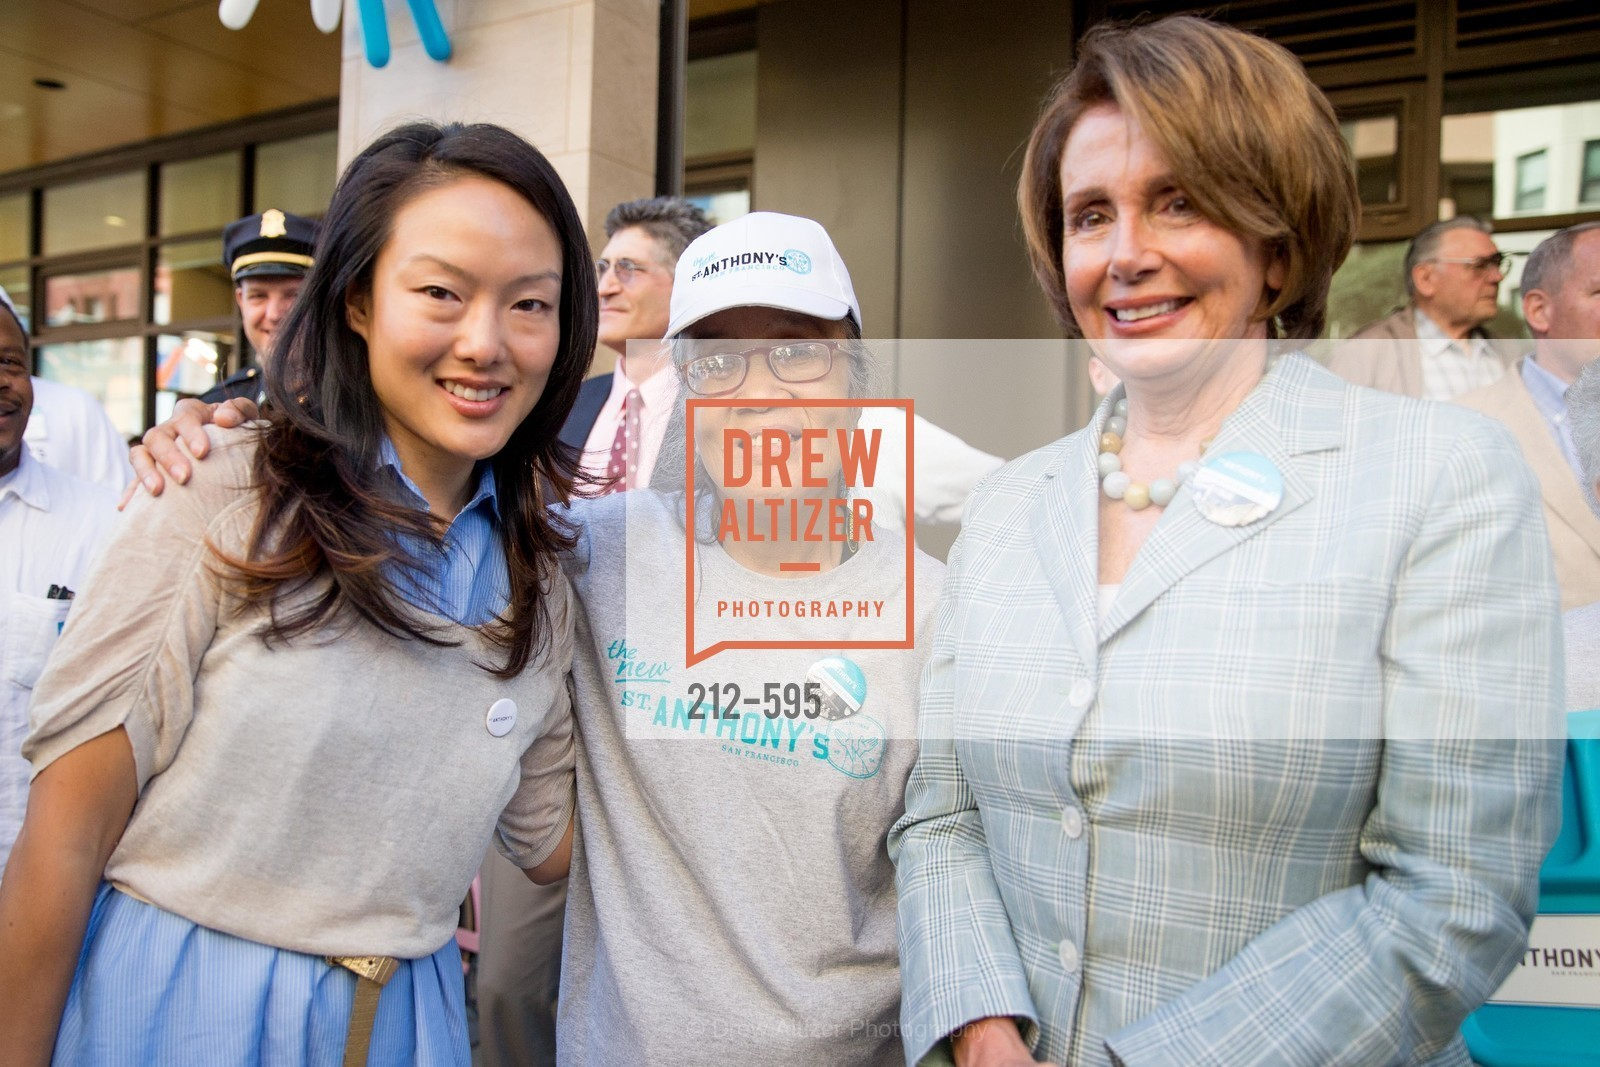 Jane Kim, Marilyn Chan, Nancy Pelosi, ST. ANTHONY'S Dining Room Ribbon Cutting Ceremony, US, October 5th, 2014,Drew Altizer, Drew Altizer Photography, full-service agency, private events, San Francisco photographer, photographer california